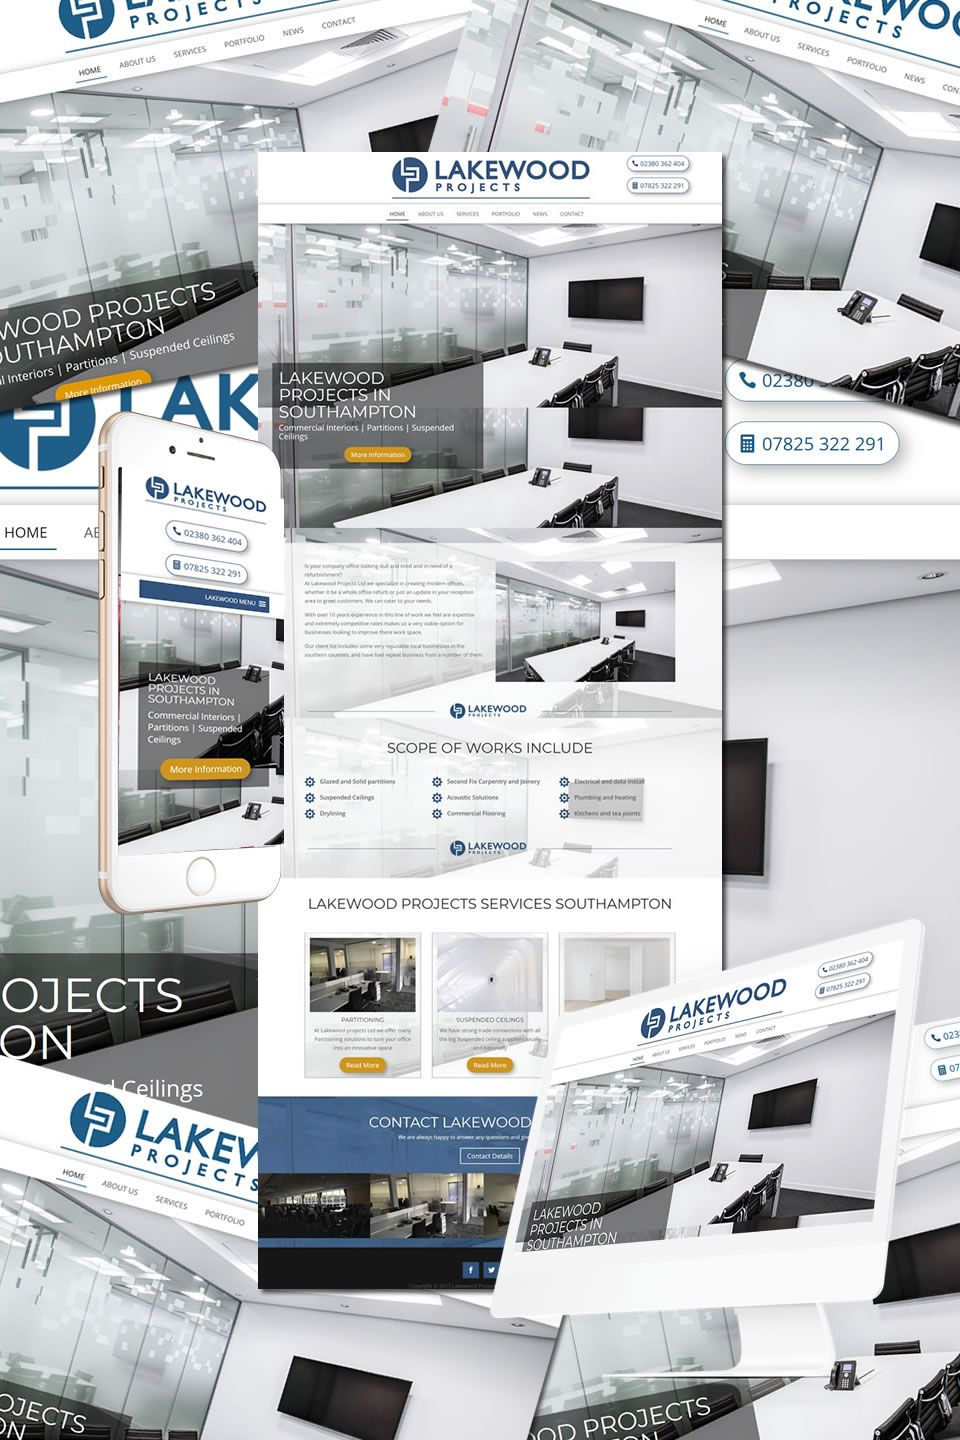 The New Website For Lakewood Projects In Southampton Https Hostcat Co Uk Project Lakewood Projects The New Website F Portfolio Web Design Lakewood Web Design